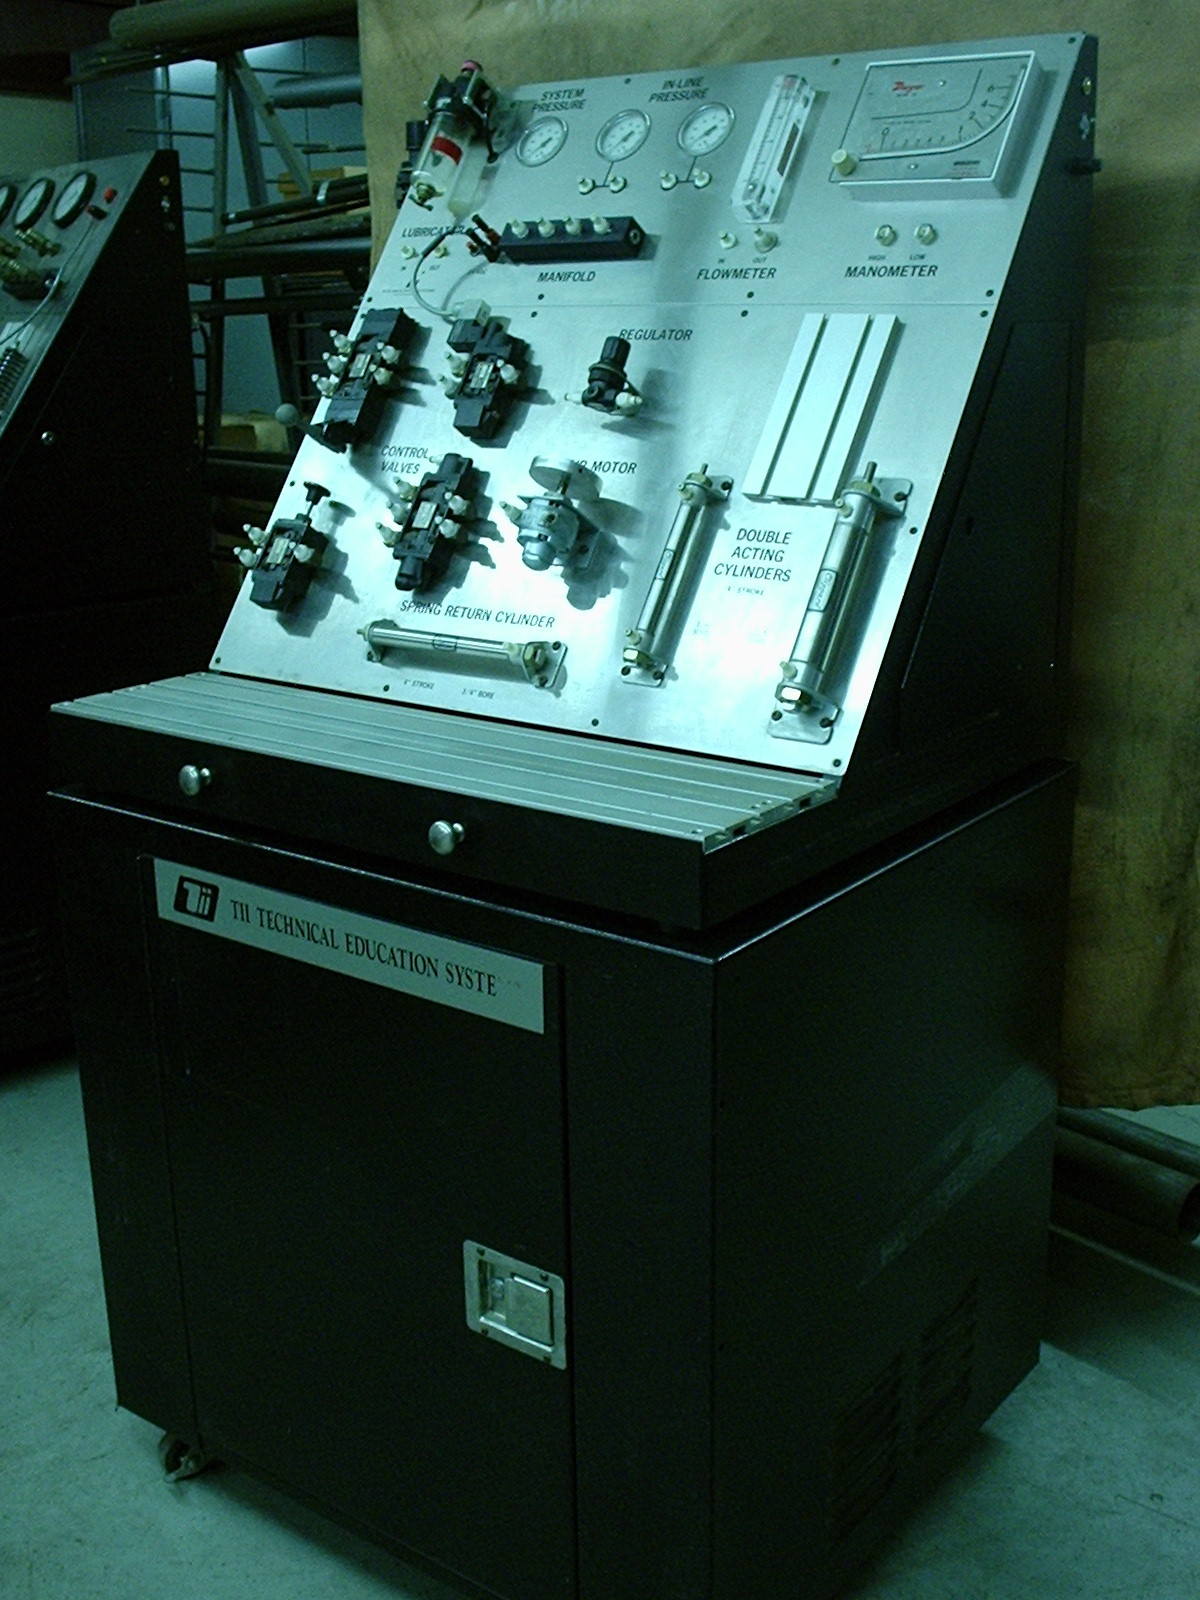 TII Technical Education Systems Explorer 1 Industrial Pneumatic Training System